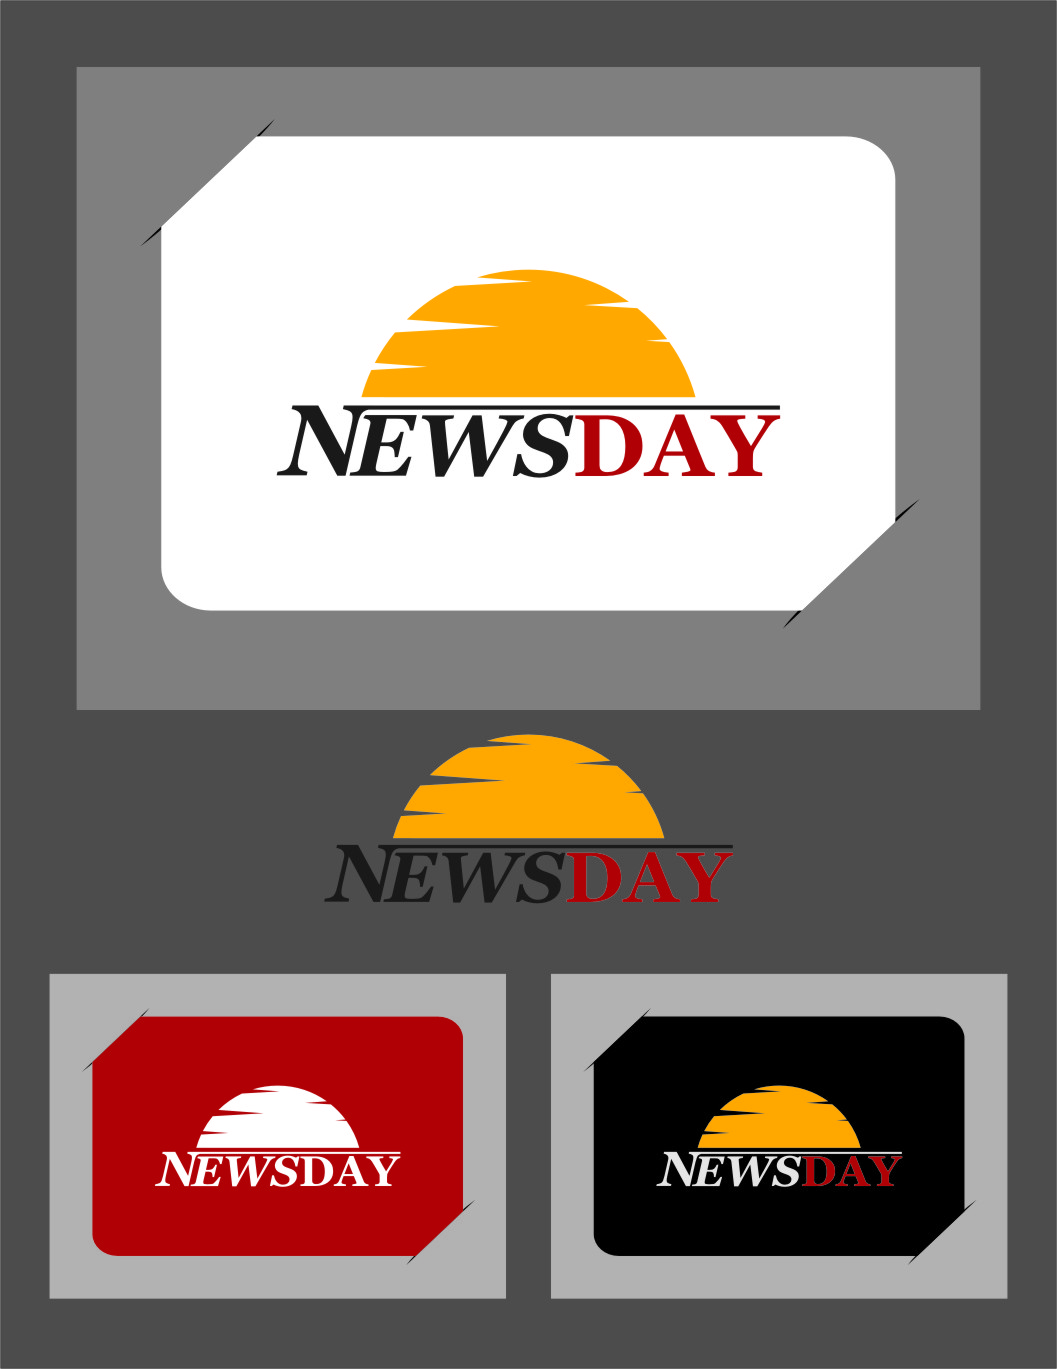 Logo Design by Ngepet_art - Entry No. 7 in the Logo Design Contest Artistic Logo Design for Newsday.